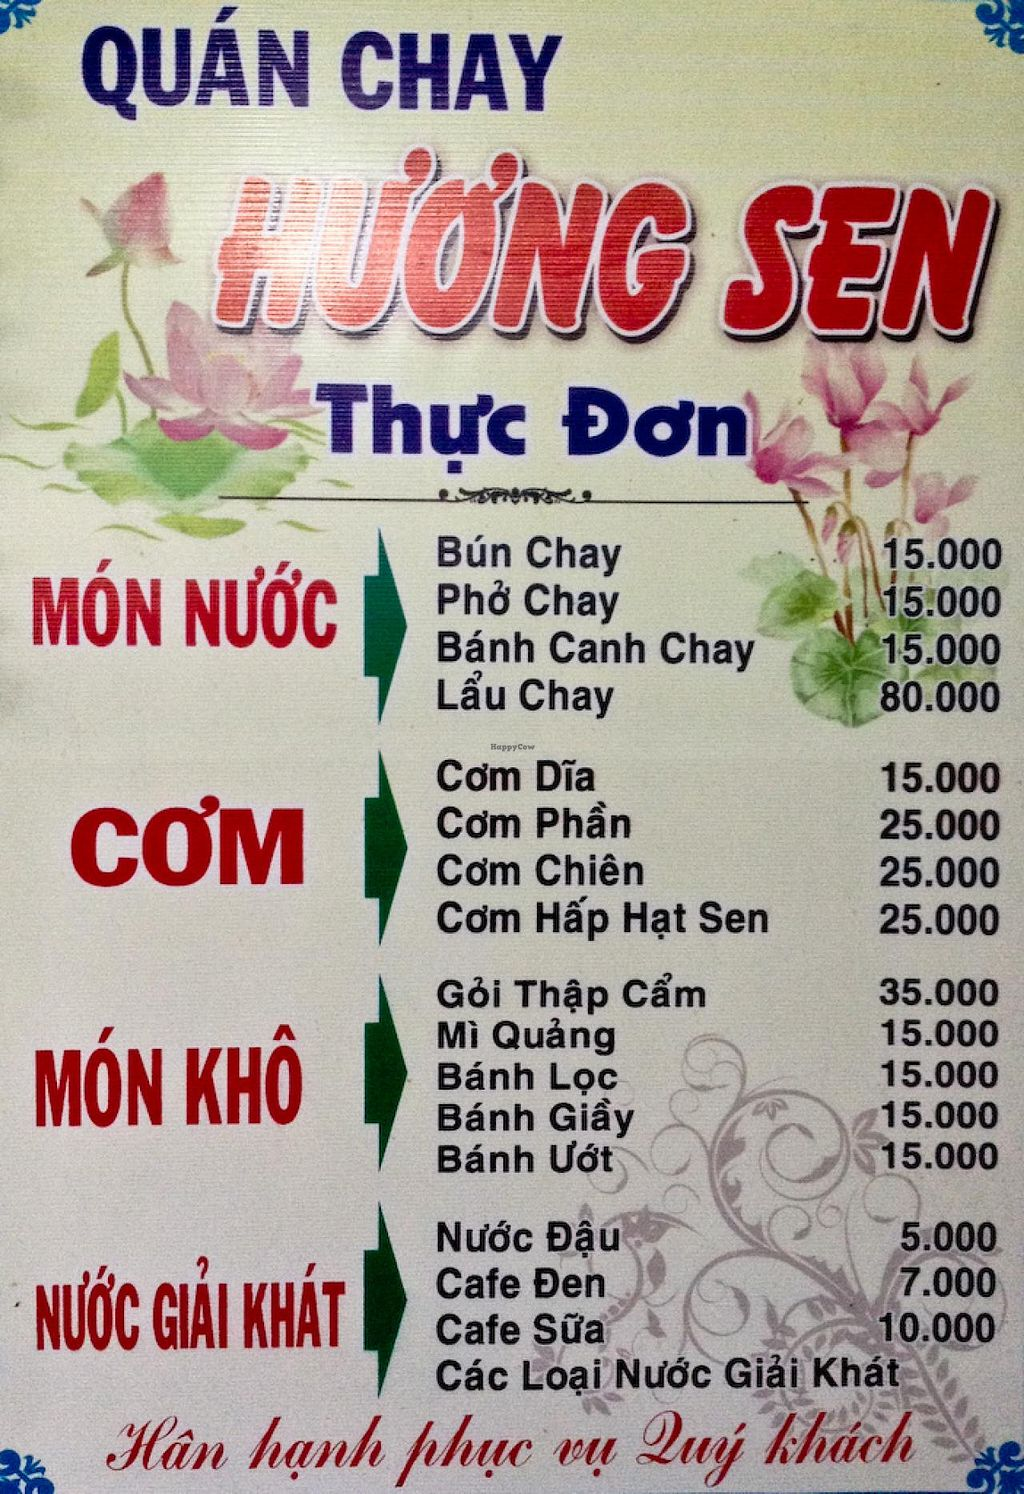 """Photo of Quan Chay Huong Sen  by <a href=""""/members/profile/Ranks42"""">Ranks42</a> <br/>The menu features a range of noodle and rice dish at prices between .75 and 4 USD <br/> February 10, 2014  - <a href='/contact/abuse/image/45137/64156'>Report</a>"""